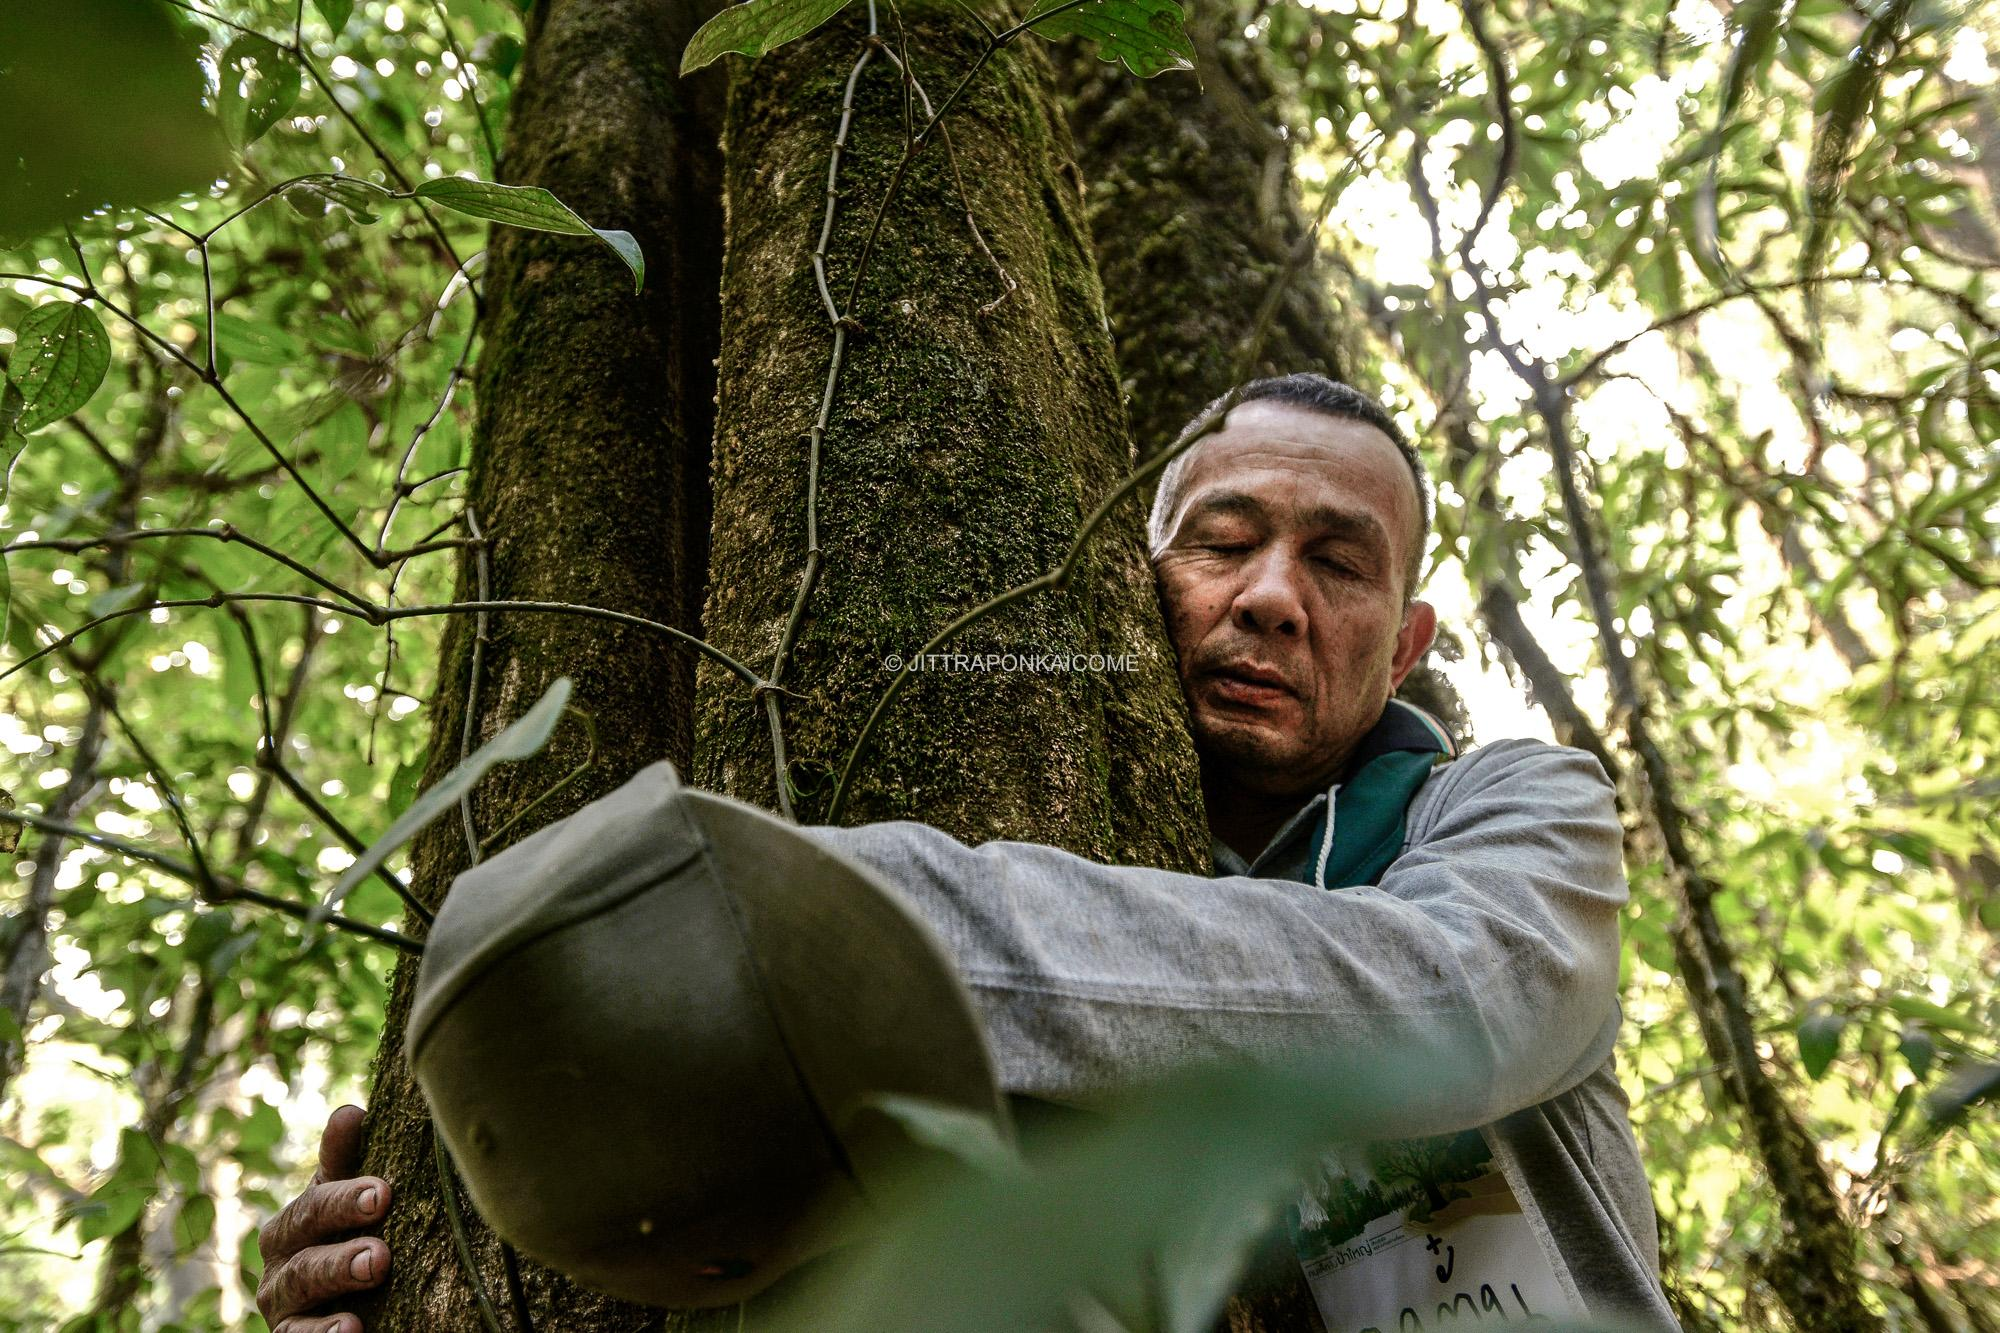 "Tann Maneetor is one of nature's messengers and a former Doi Inthanon authority. In his earlier life, he was shot in his left eye whilst tracking a forest poacher. After losing his eye, he realized that multiple sustainable ways of solving problems and protecting the environment can only be obtained by ""planting a forest in the people's hearts."" During the smoggy season, he teaches conservation practices to youth, by leading them to experience the natural forest environment. He's teaching these children to have a perception of living in harmony with nature, ensuring that this ideology will consistently be passed down through many generations. Chiang Mai, Thailand."